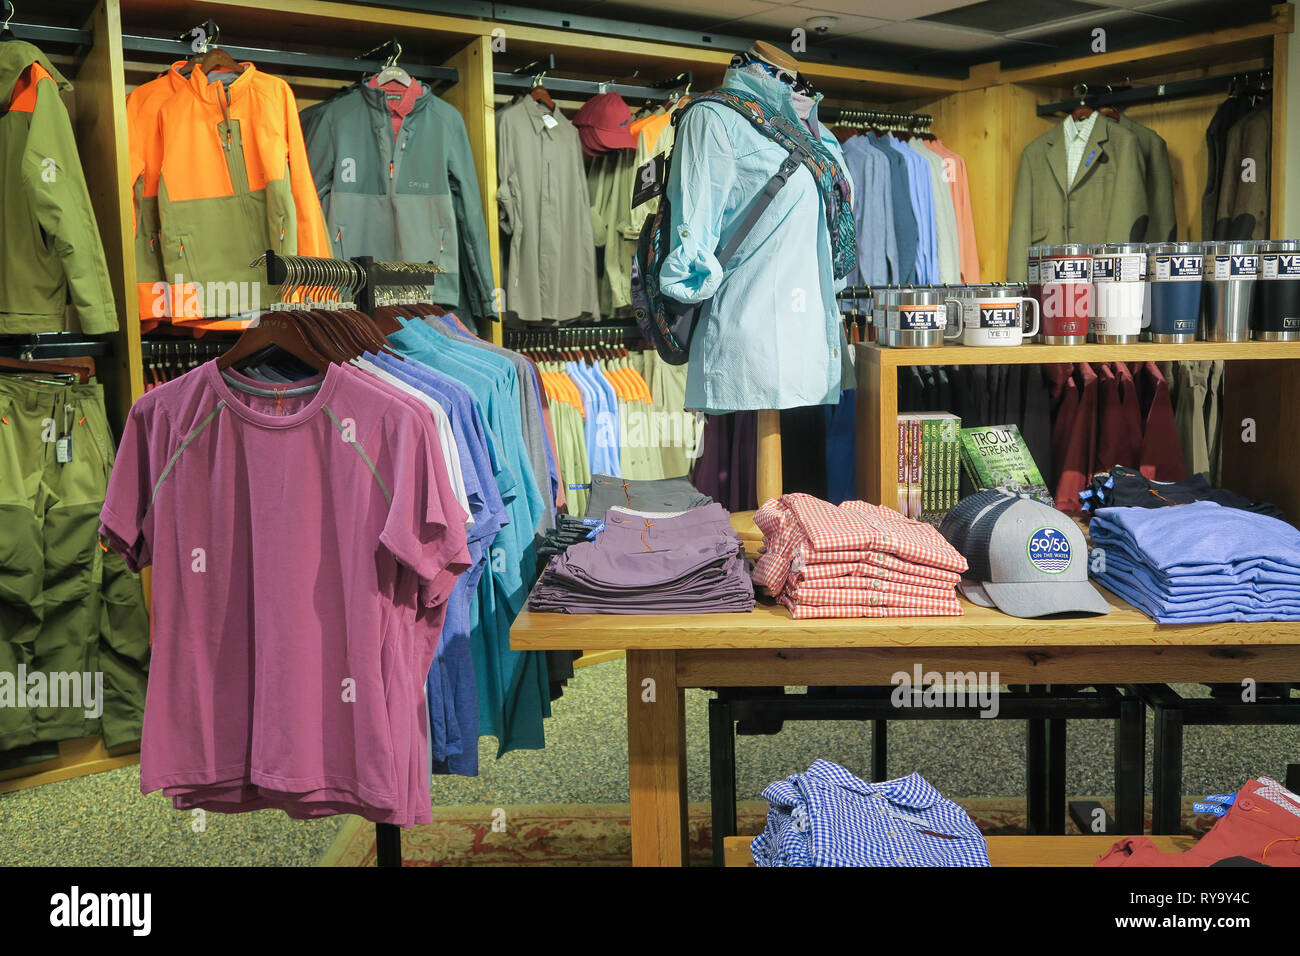 405869137 Orvis Fifth Avenue Store Interior, New York City, USA - Stock Image